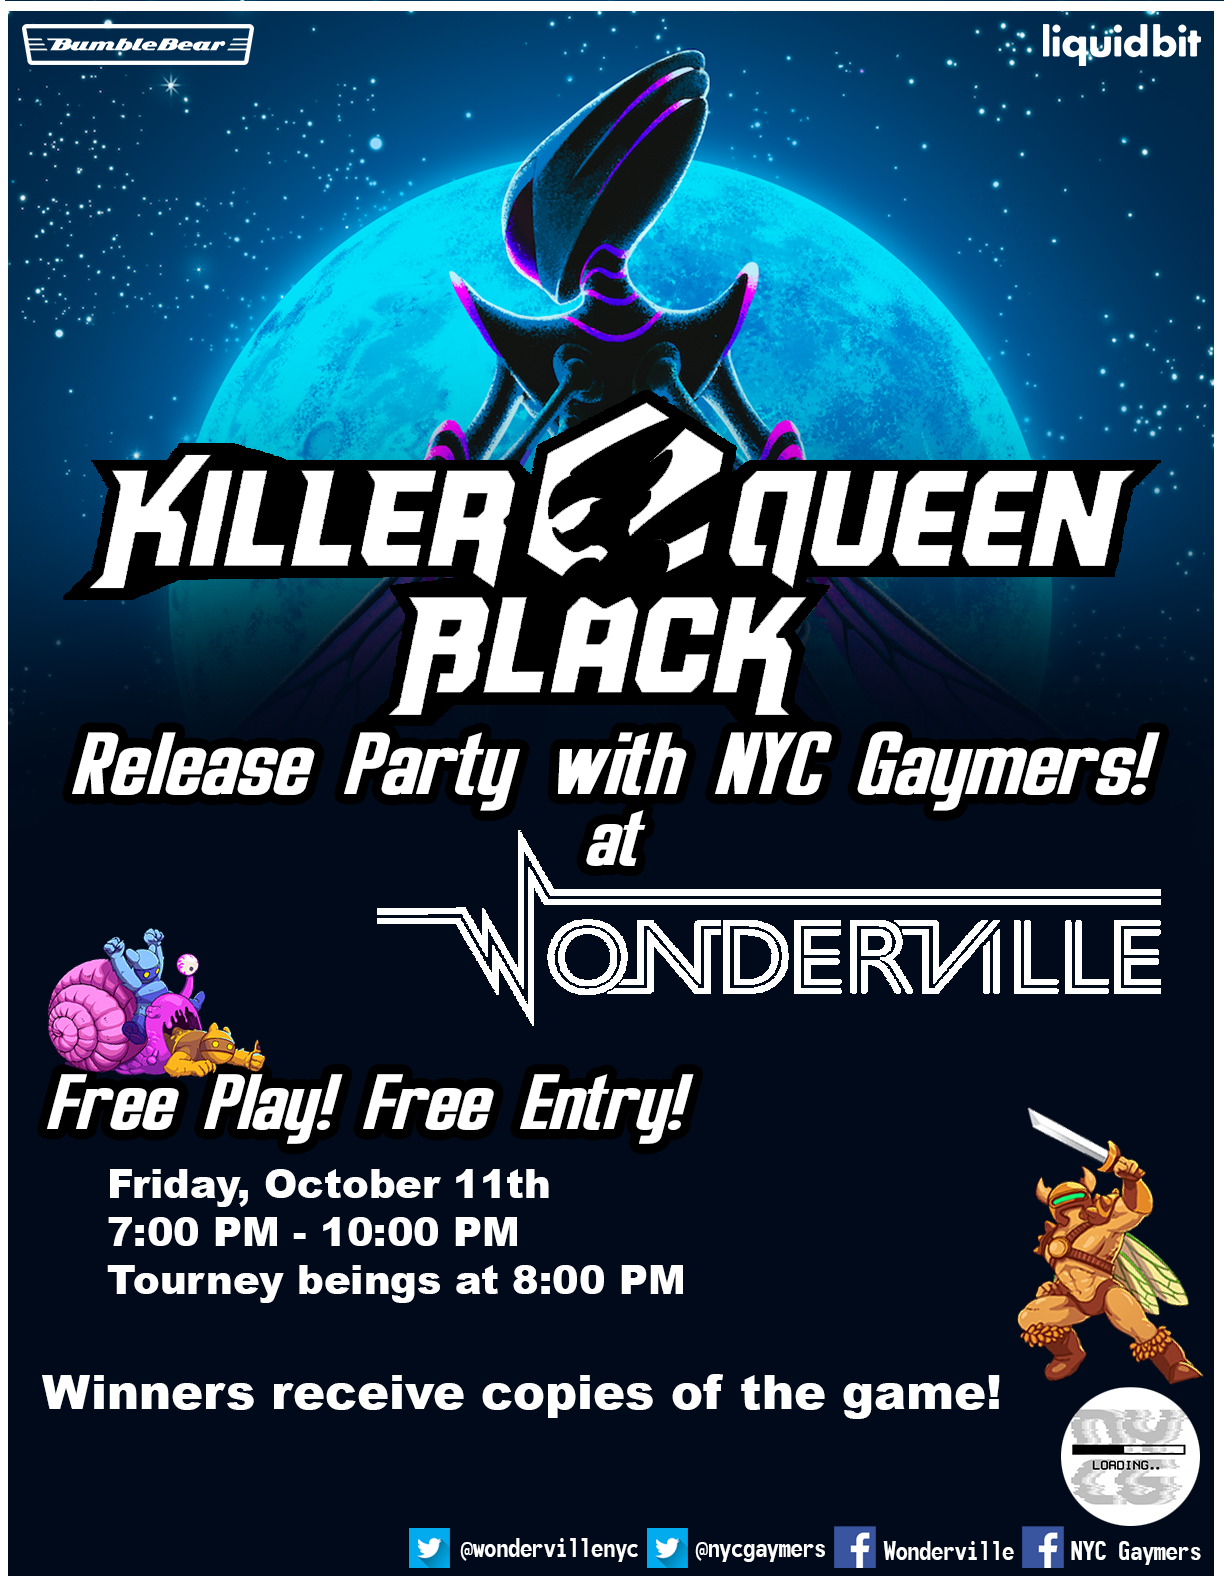 Tickets:  https://withfriends.co/event/2779753/killer_queen_black_release_party